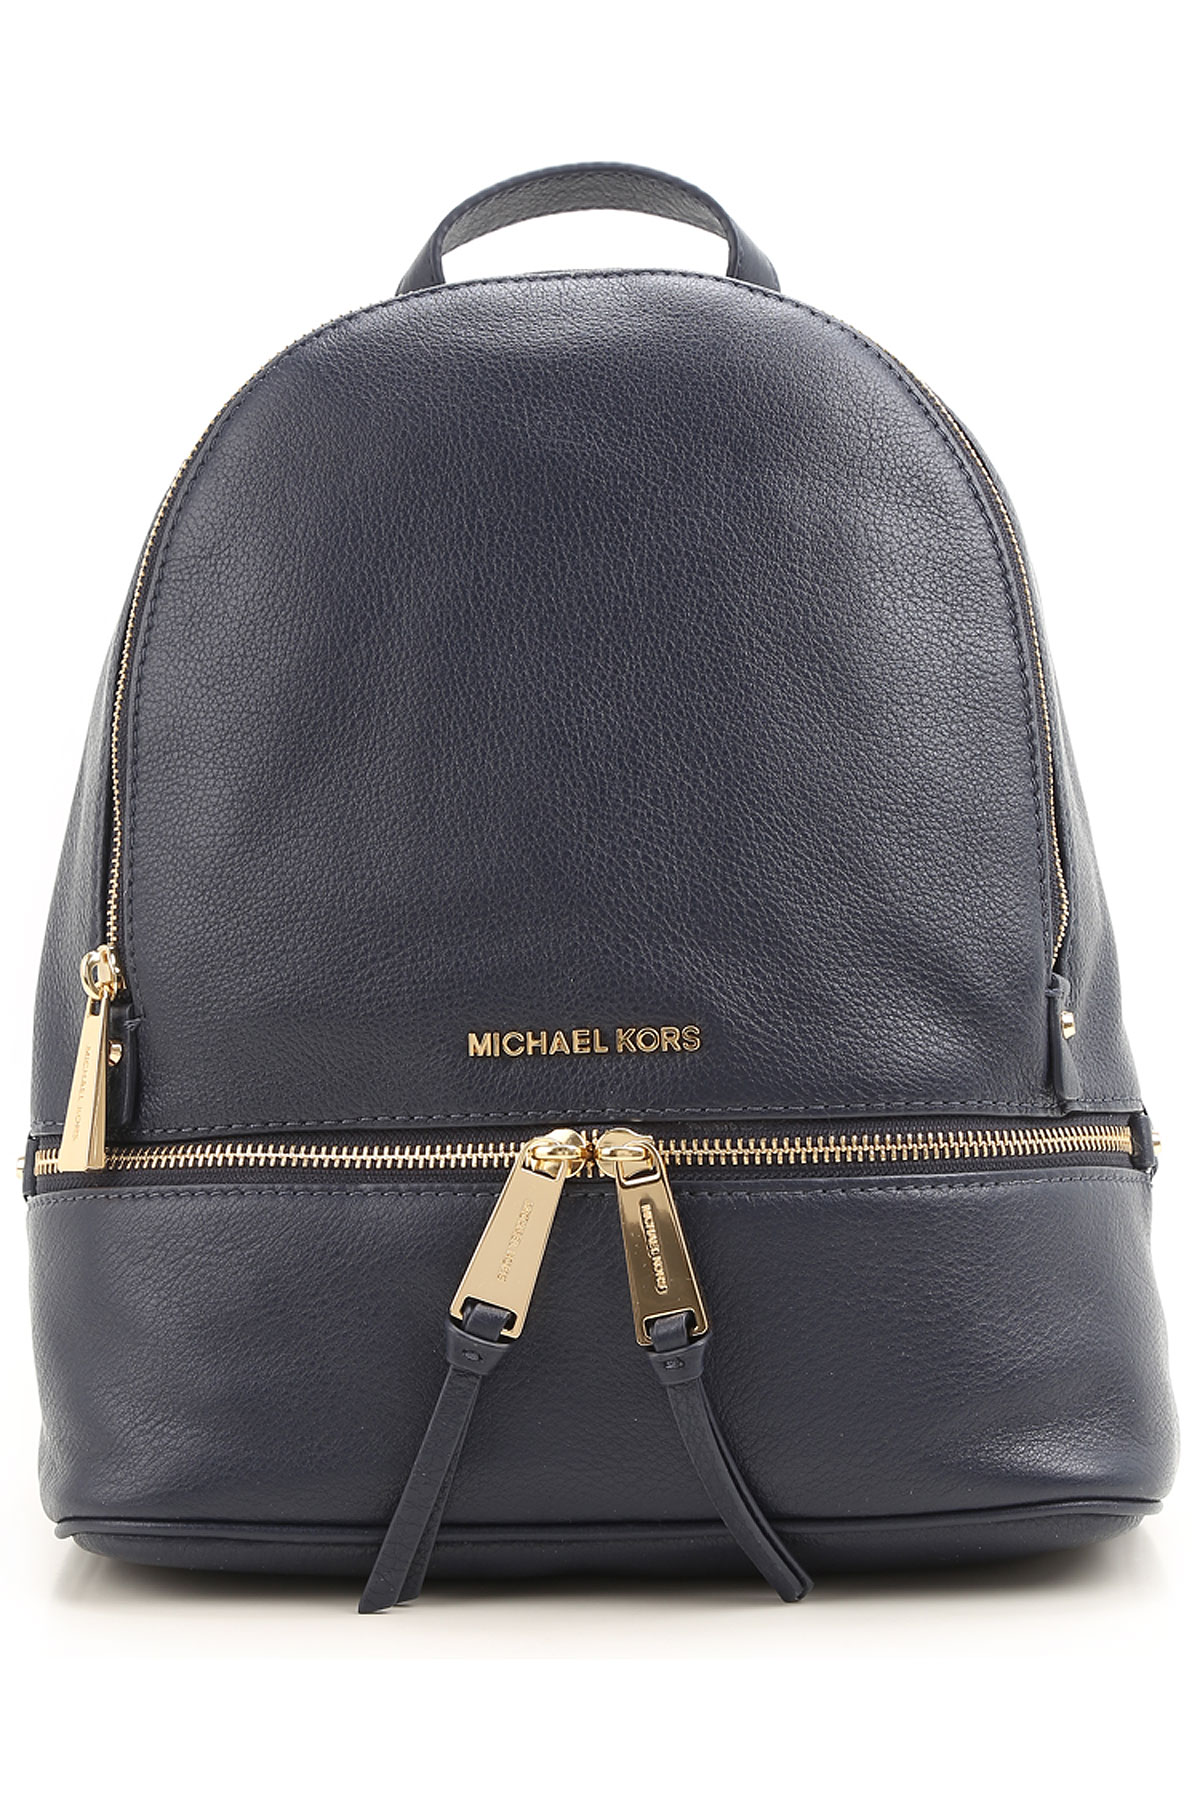 Image of Michael Kors Backpack for Women, navy, Leather, 2017